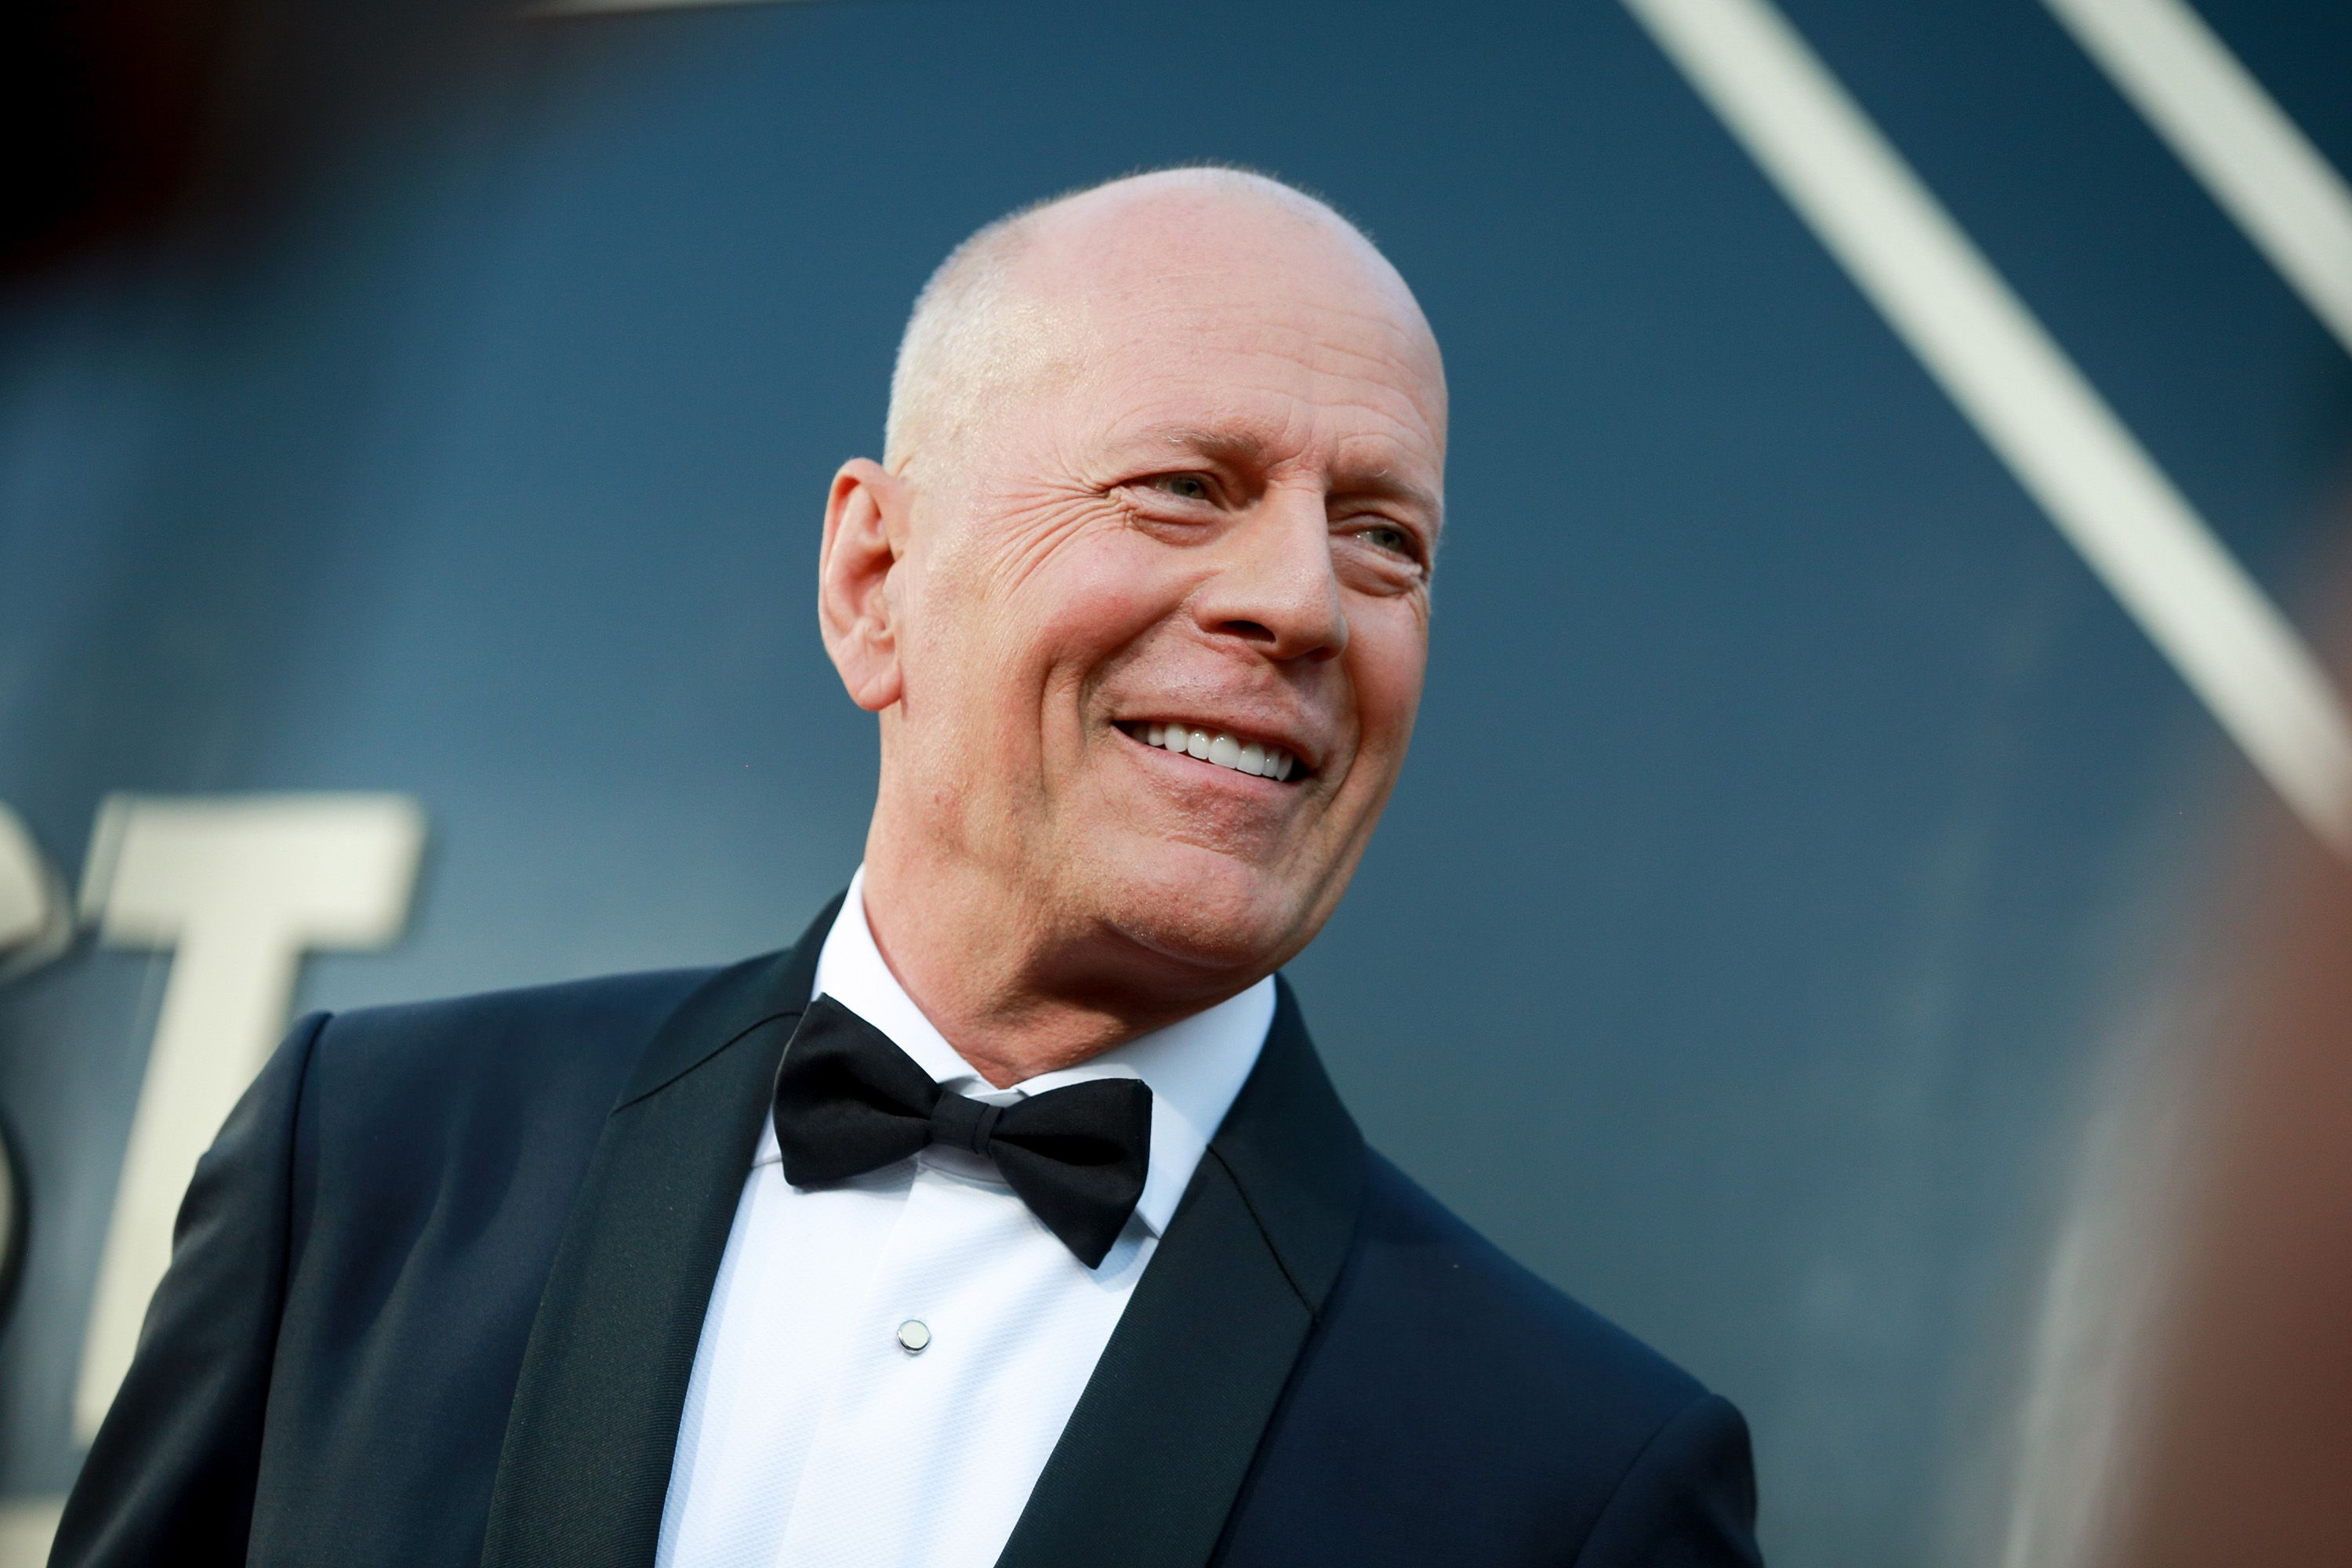 Bruce Willis at 63 The multi-faceted actor made his broadway debut in 2015 with Misery .